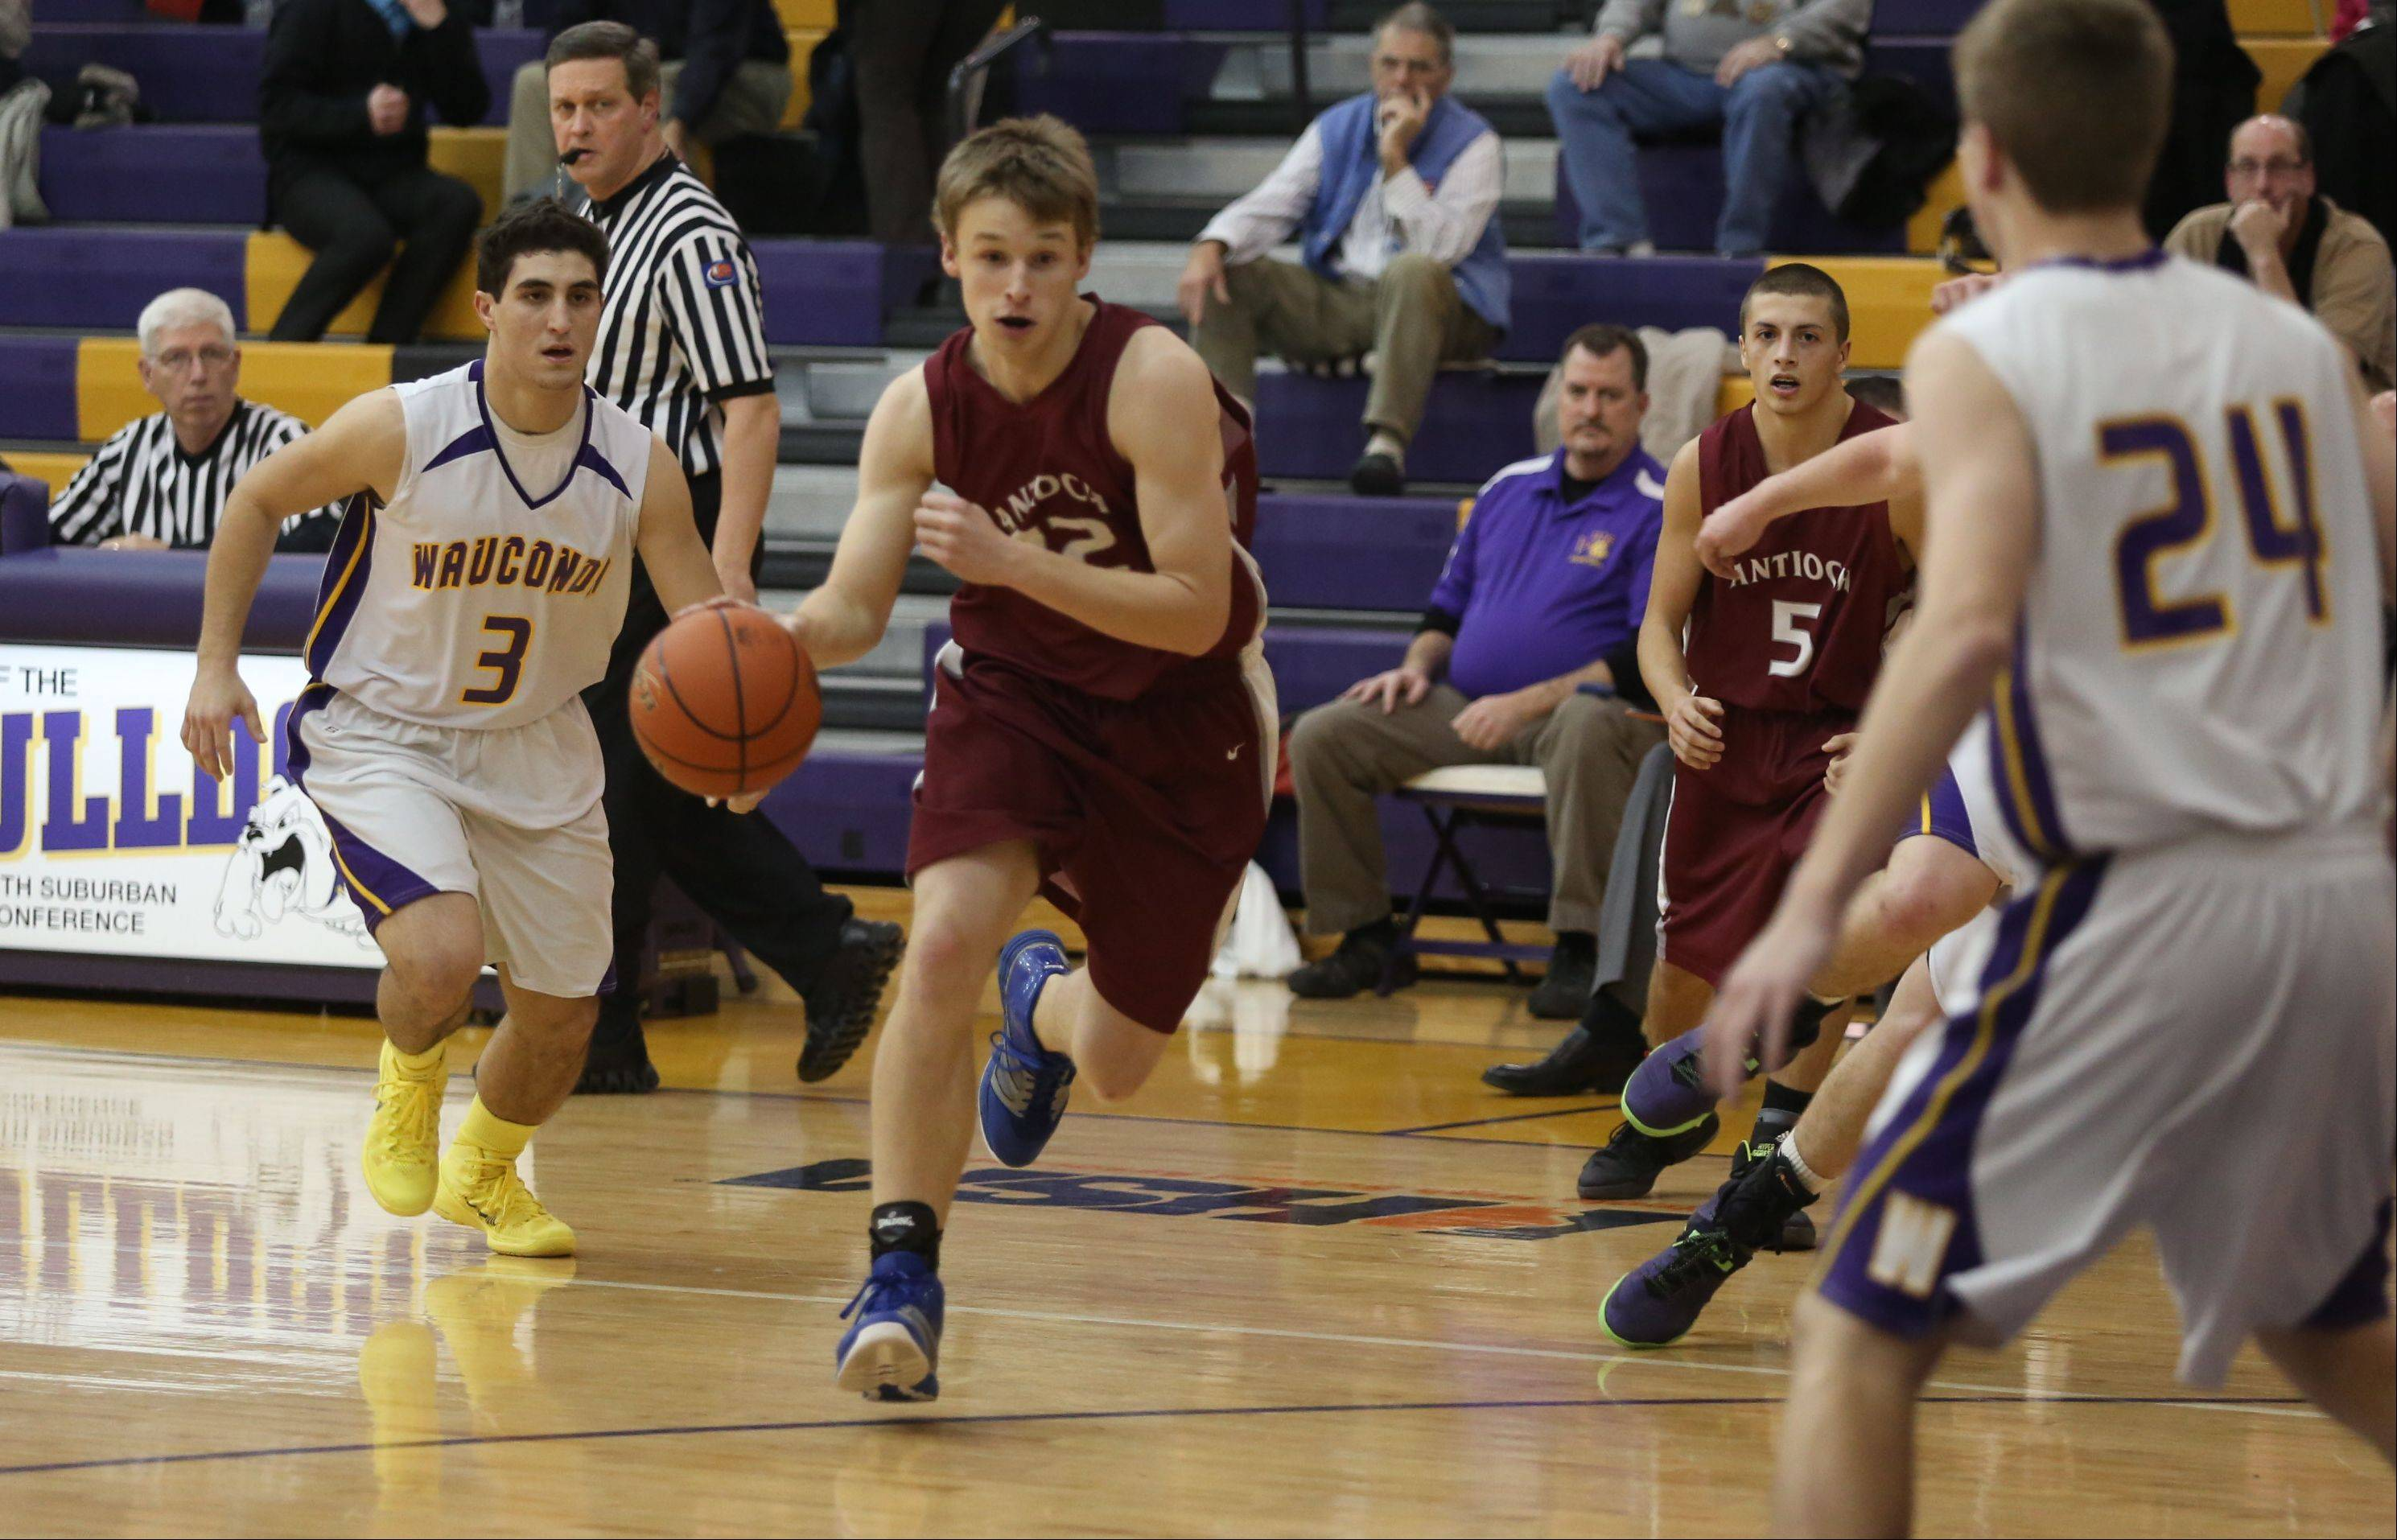 Images: Wauconda vs. Antioch boys basketball